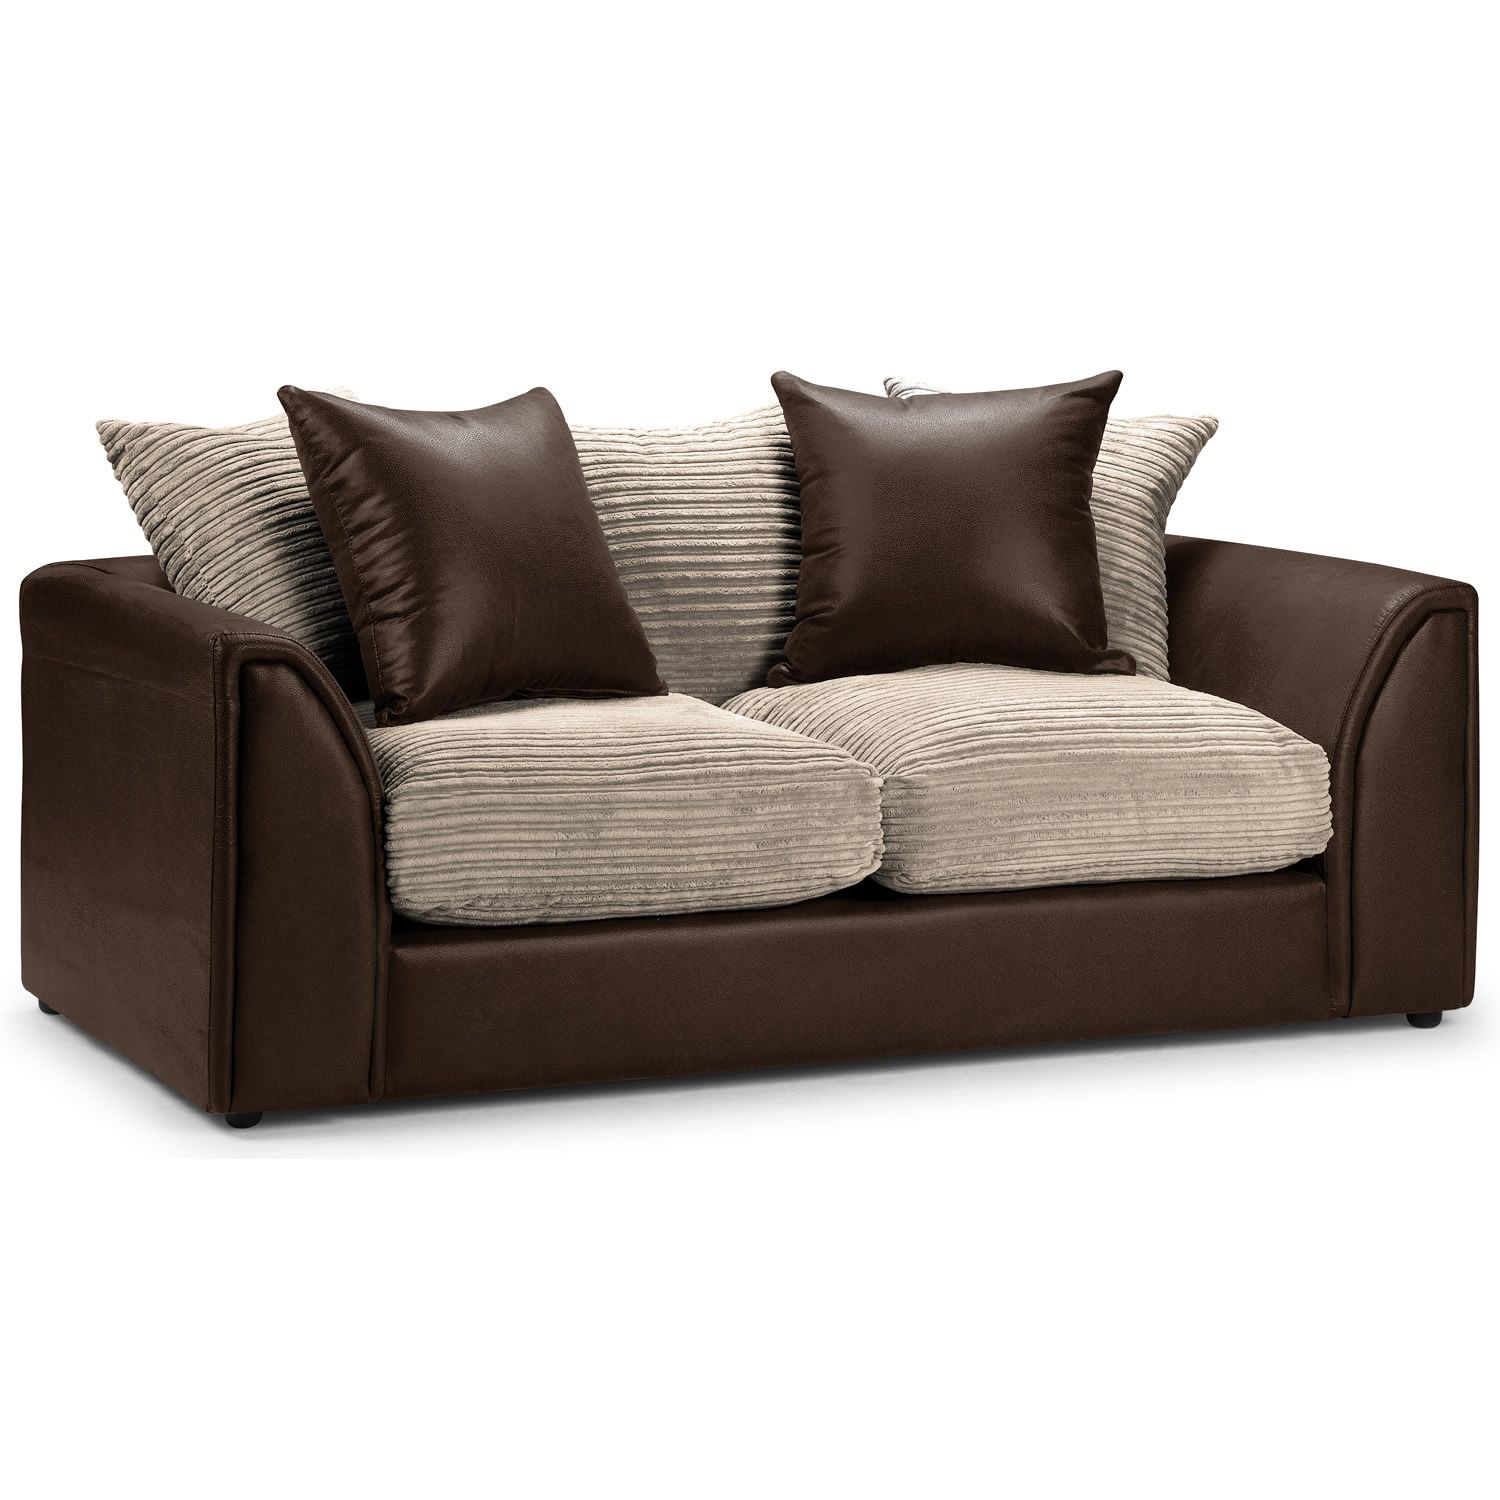 Byron Sofa Bed Next Day Delivery Byron Sofa Bed